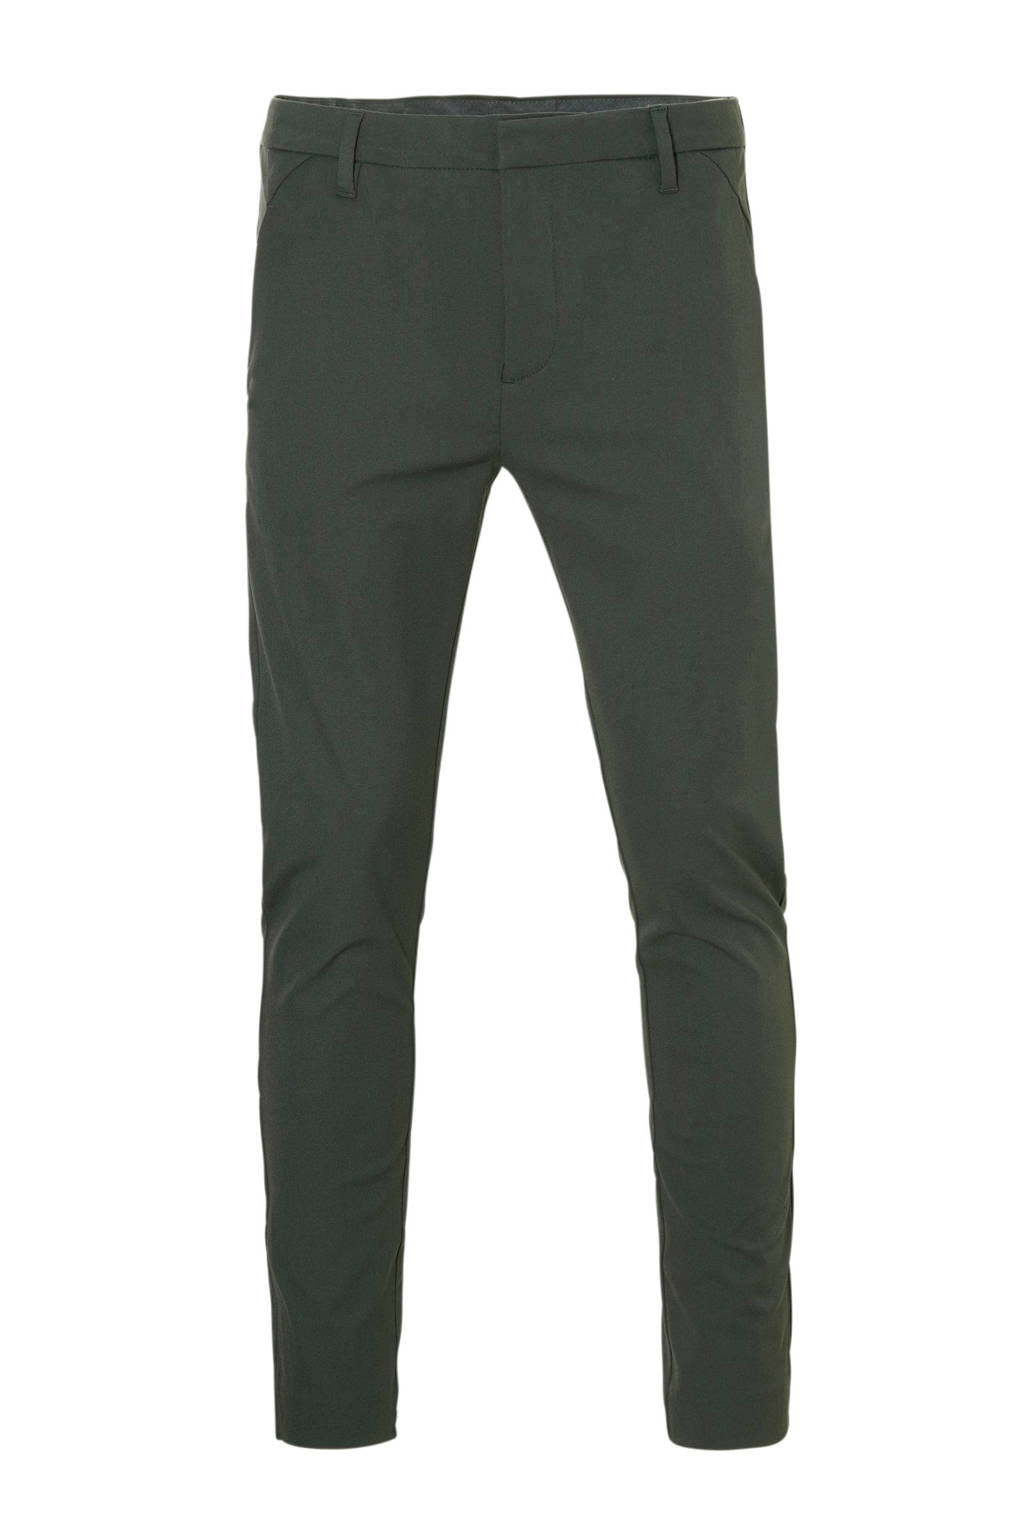 PLAIN slim fit chino, Groen